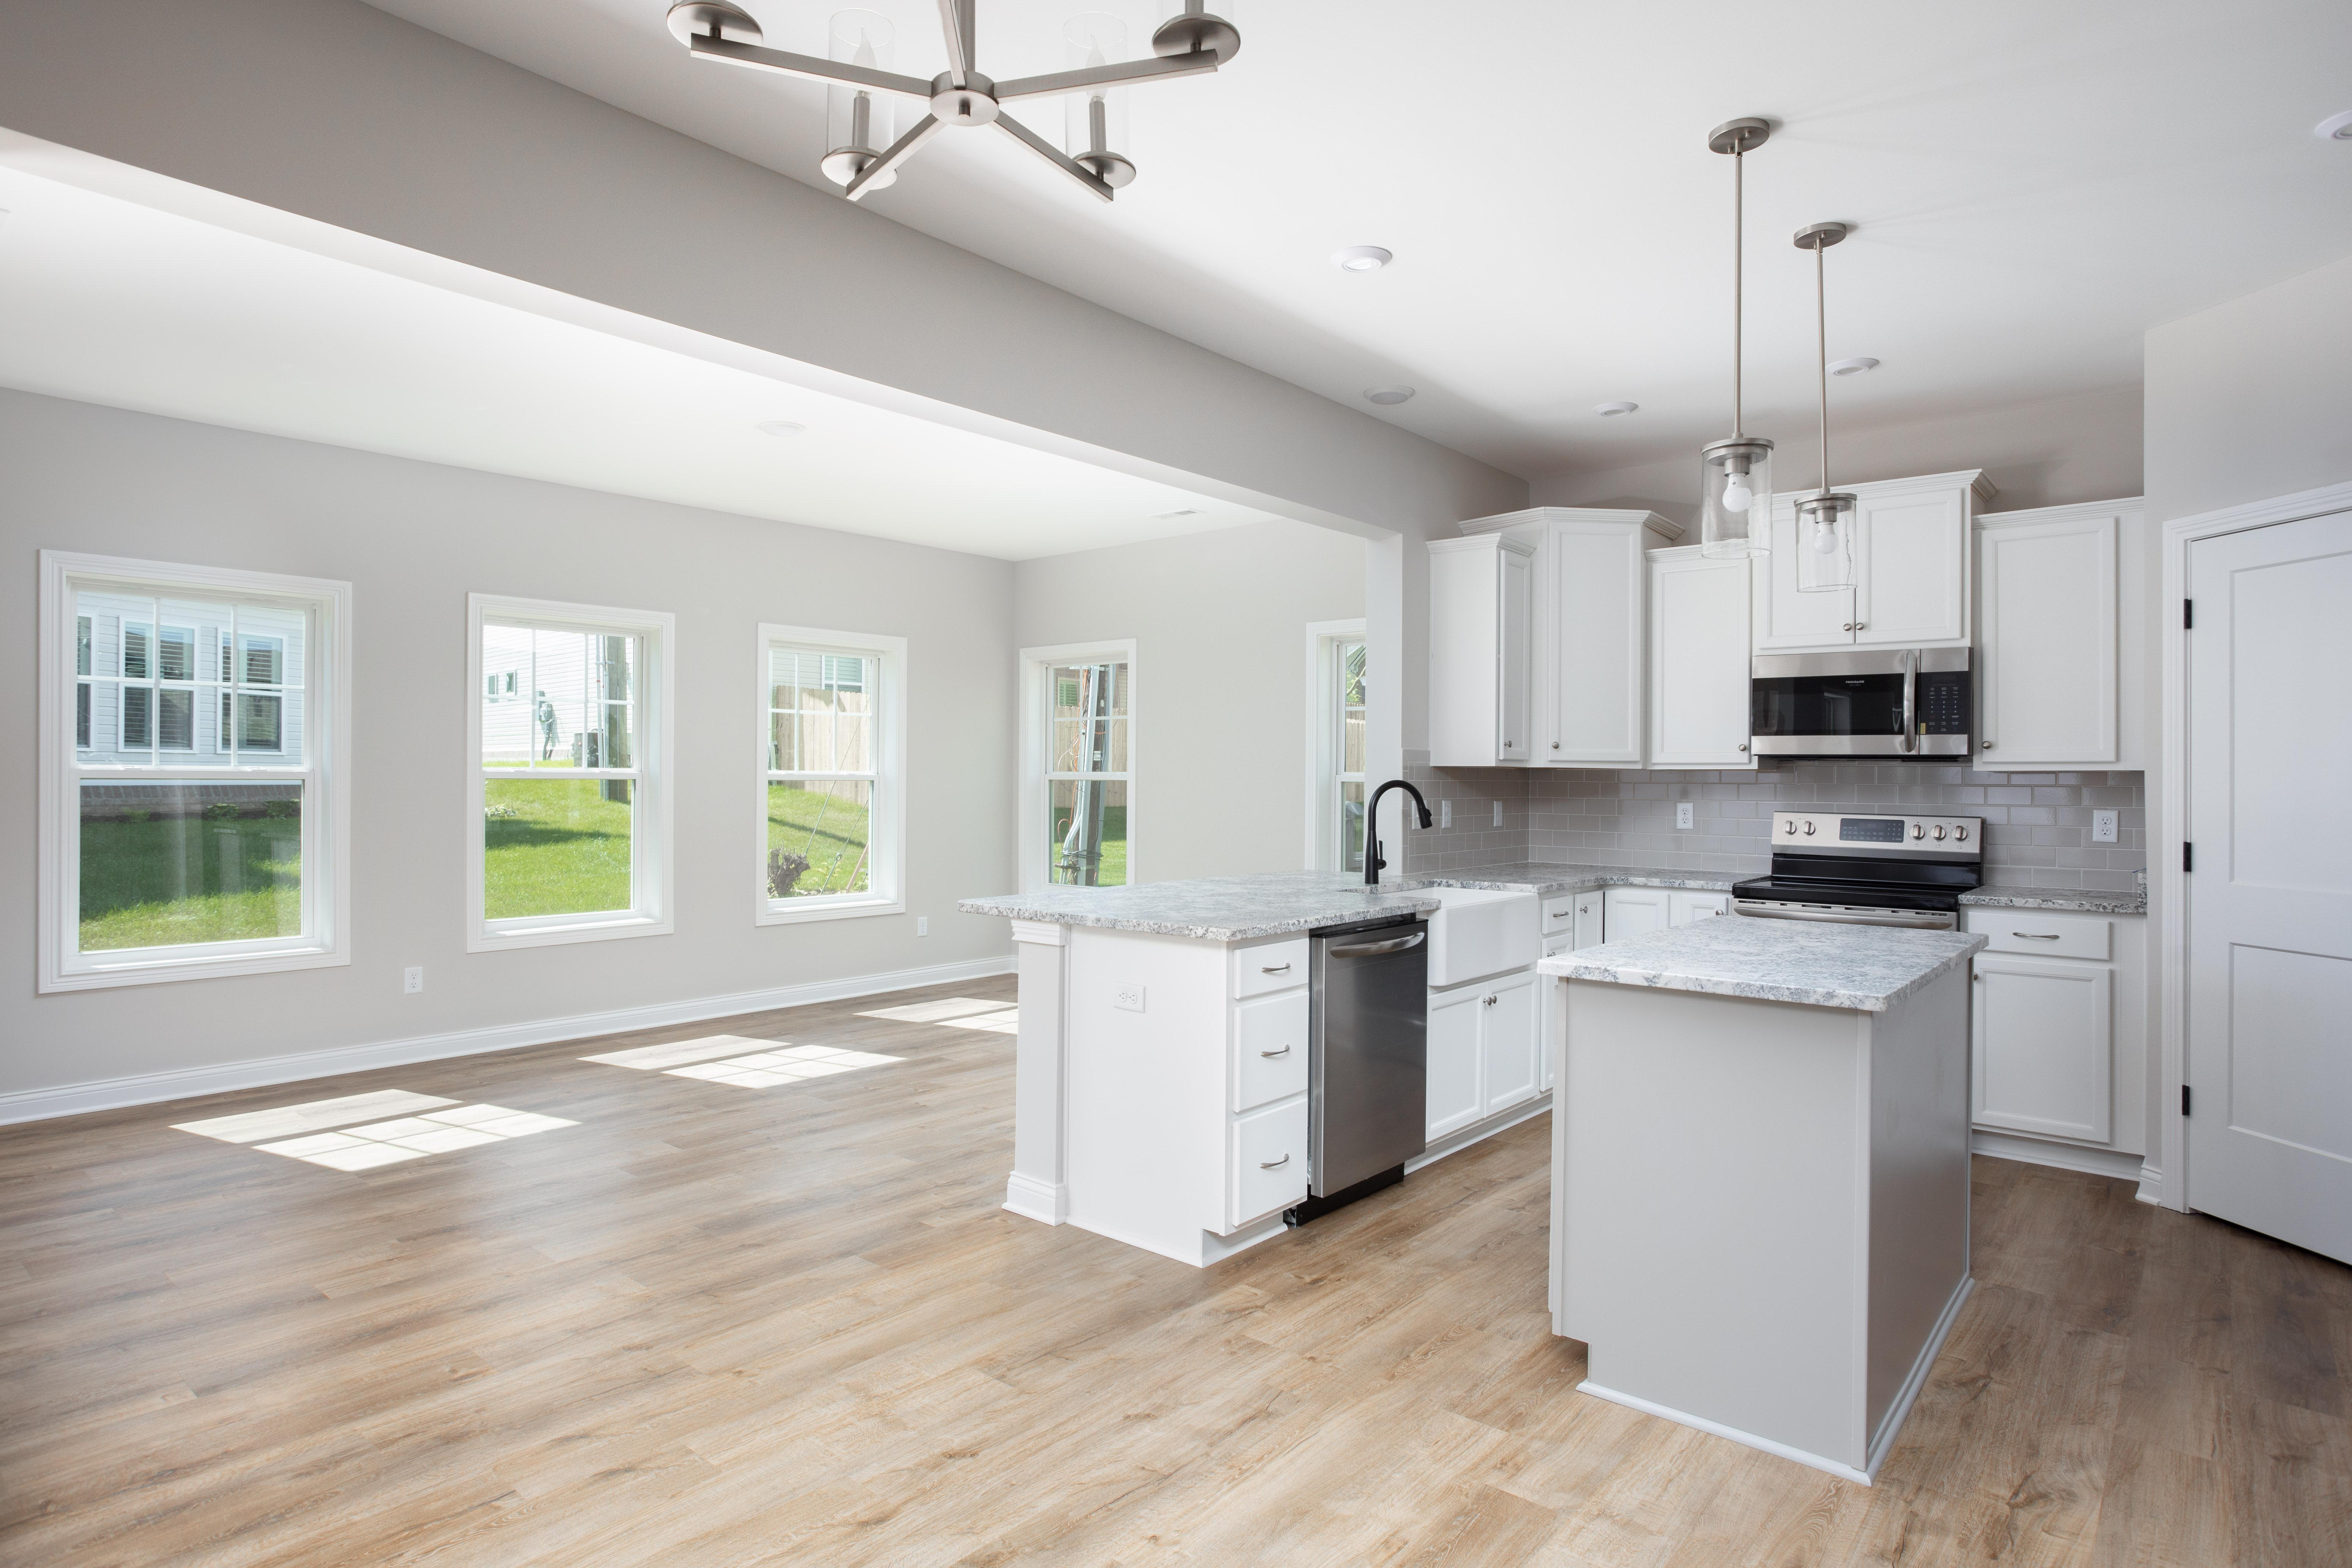 Kitchen featured in the XThe Nancy - 3rd Car By James Monroe Homes in Lexington, KY